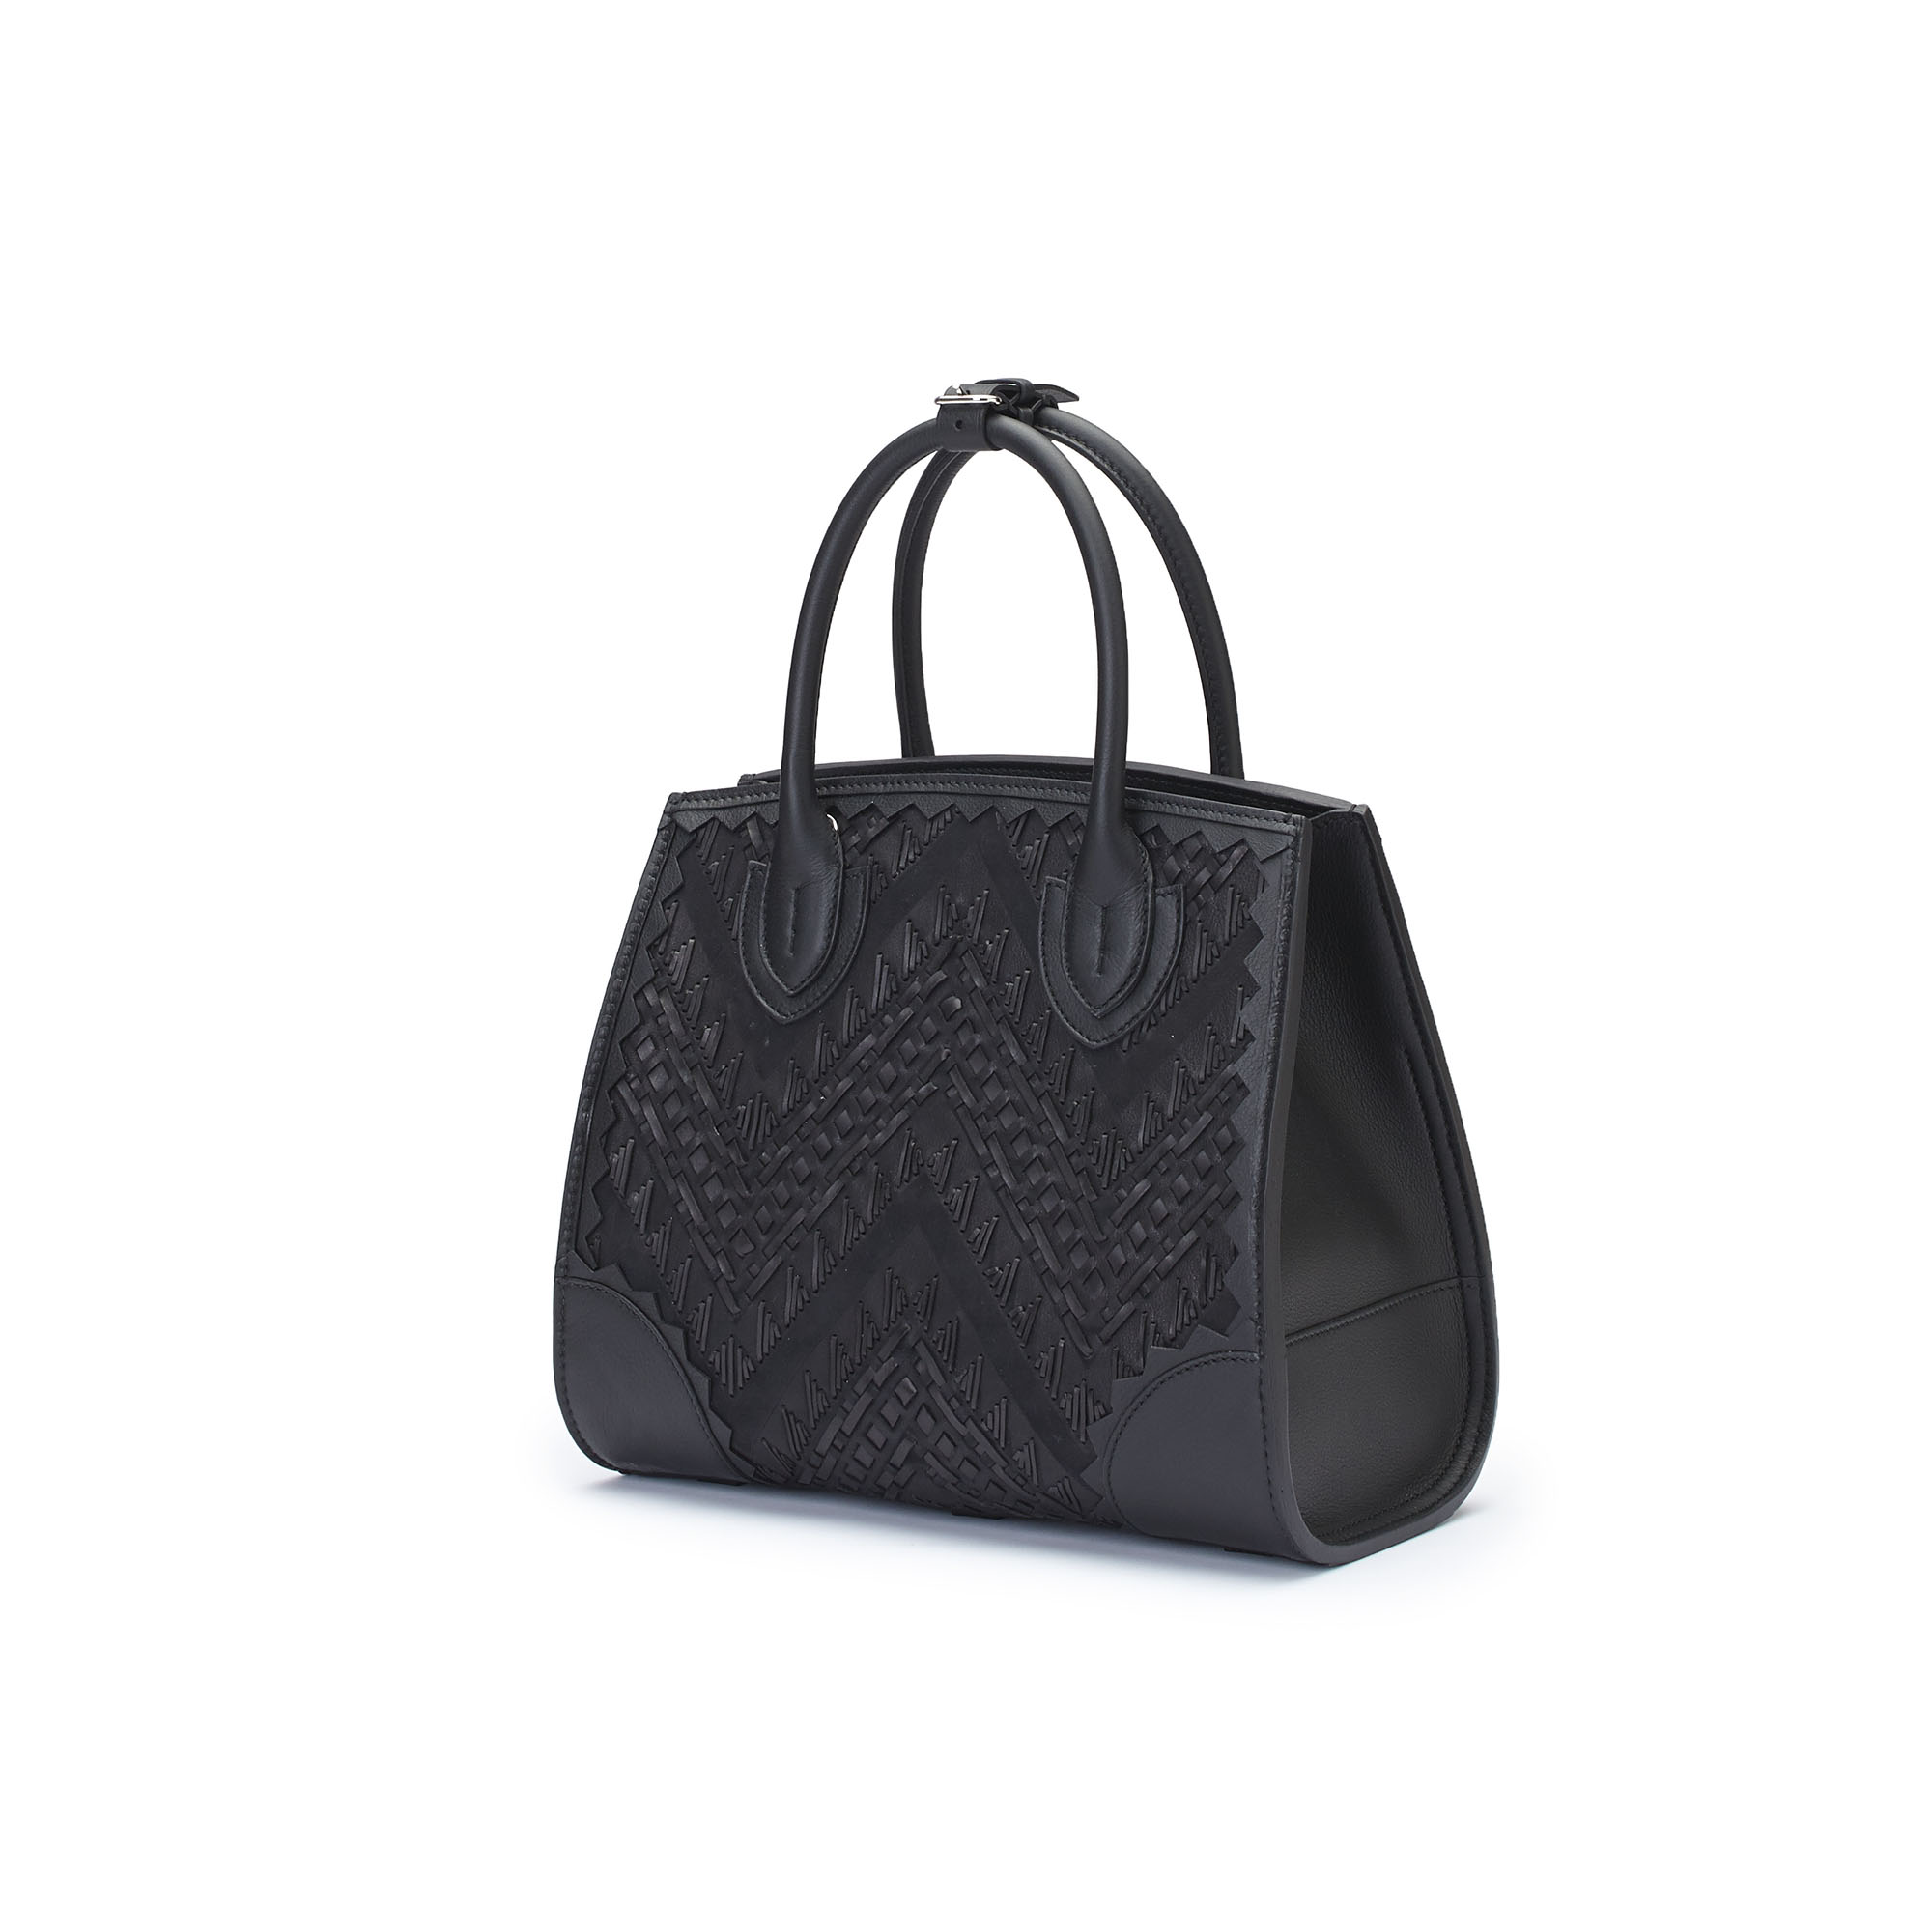 The black stranded leather with soft calf Darcy bag by Bertoni 1949 02